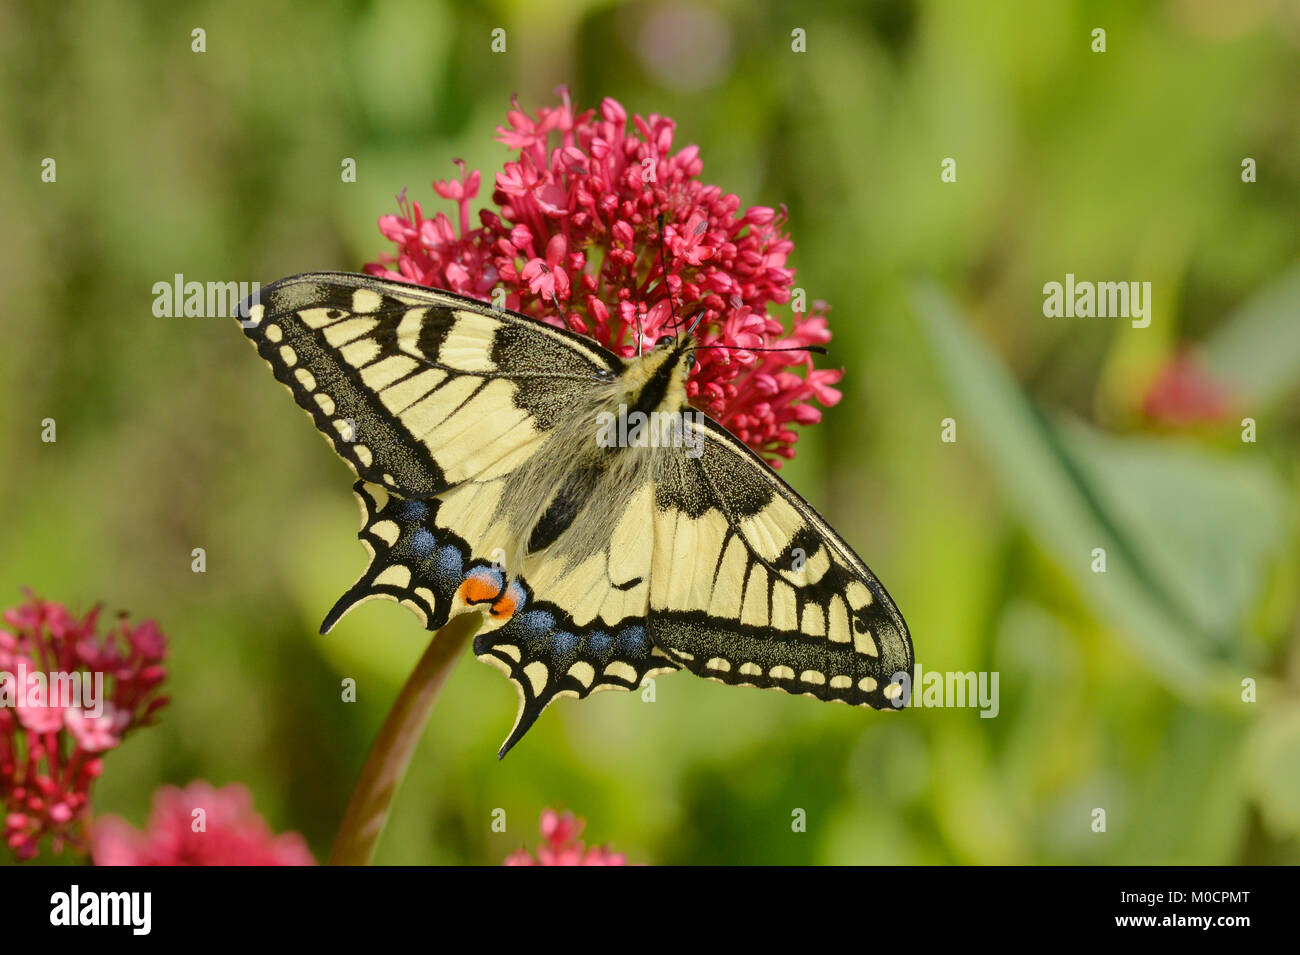 Swallowtail Butterfly Papilio machaon Photographed in the Pyrenees, France Stock Photo